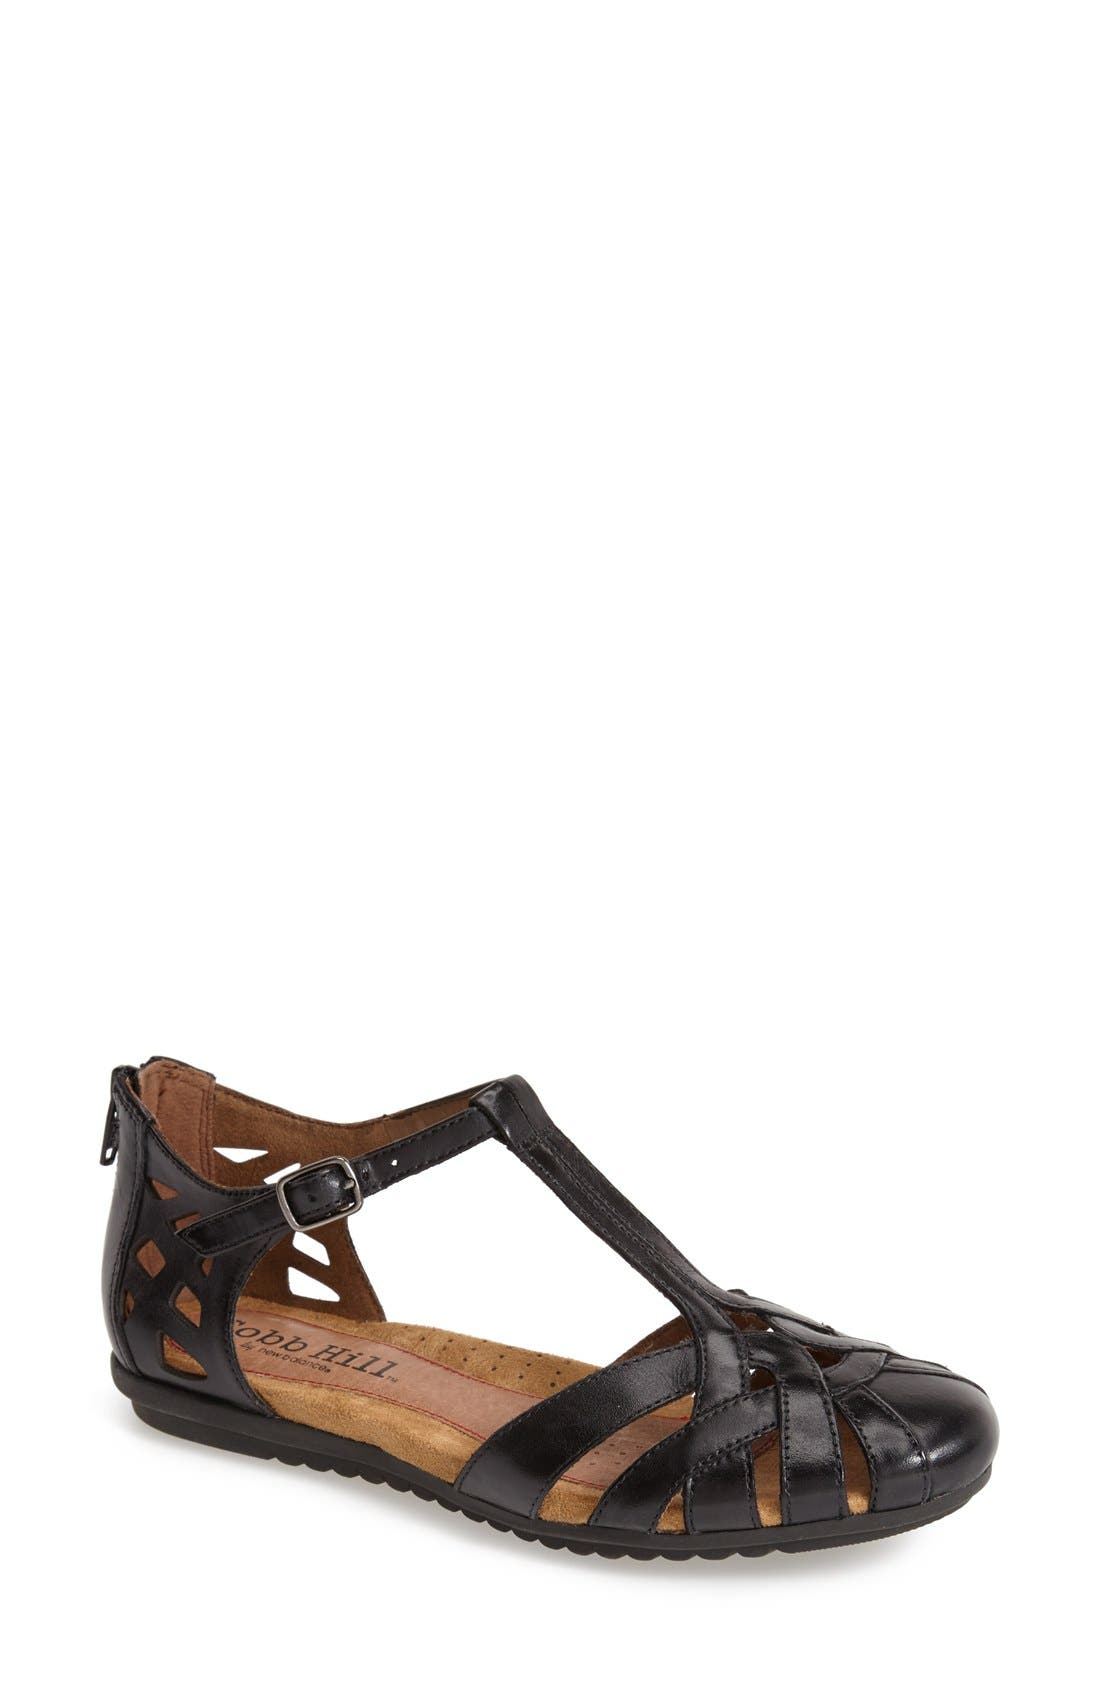 Rockport Cobb Hill 'Ireland' Leather Sandal ...